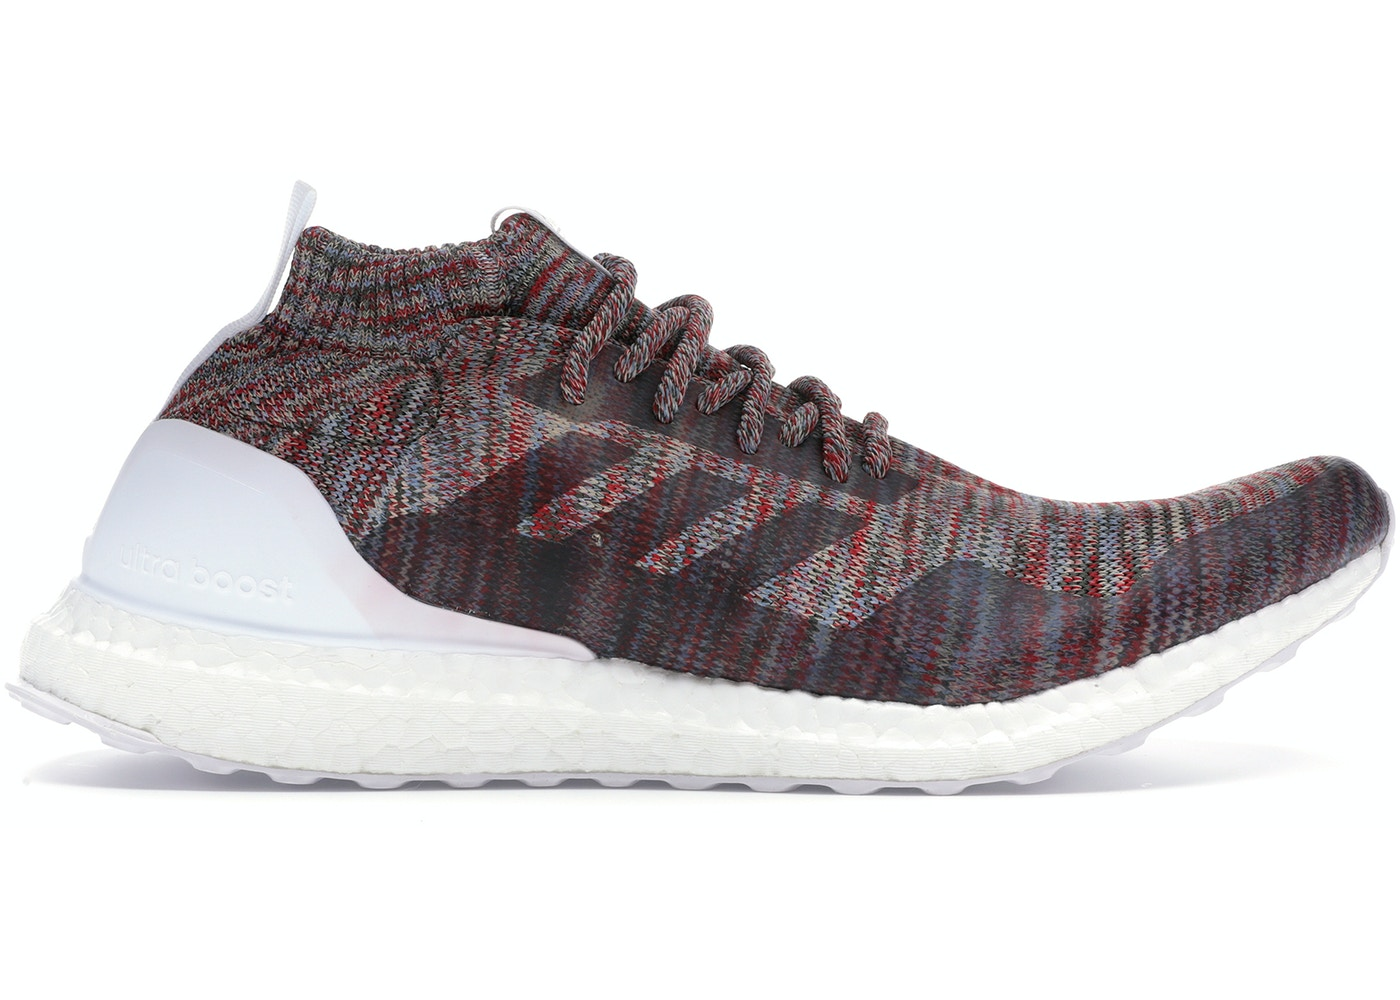 9606dc6c2210 adidas Ultra Boost Mid Ronnie Fieg - BY2592